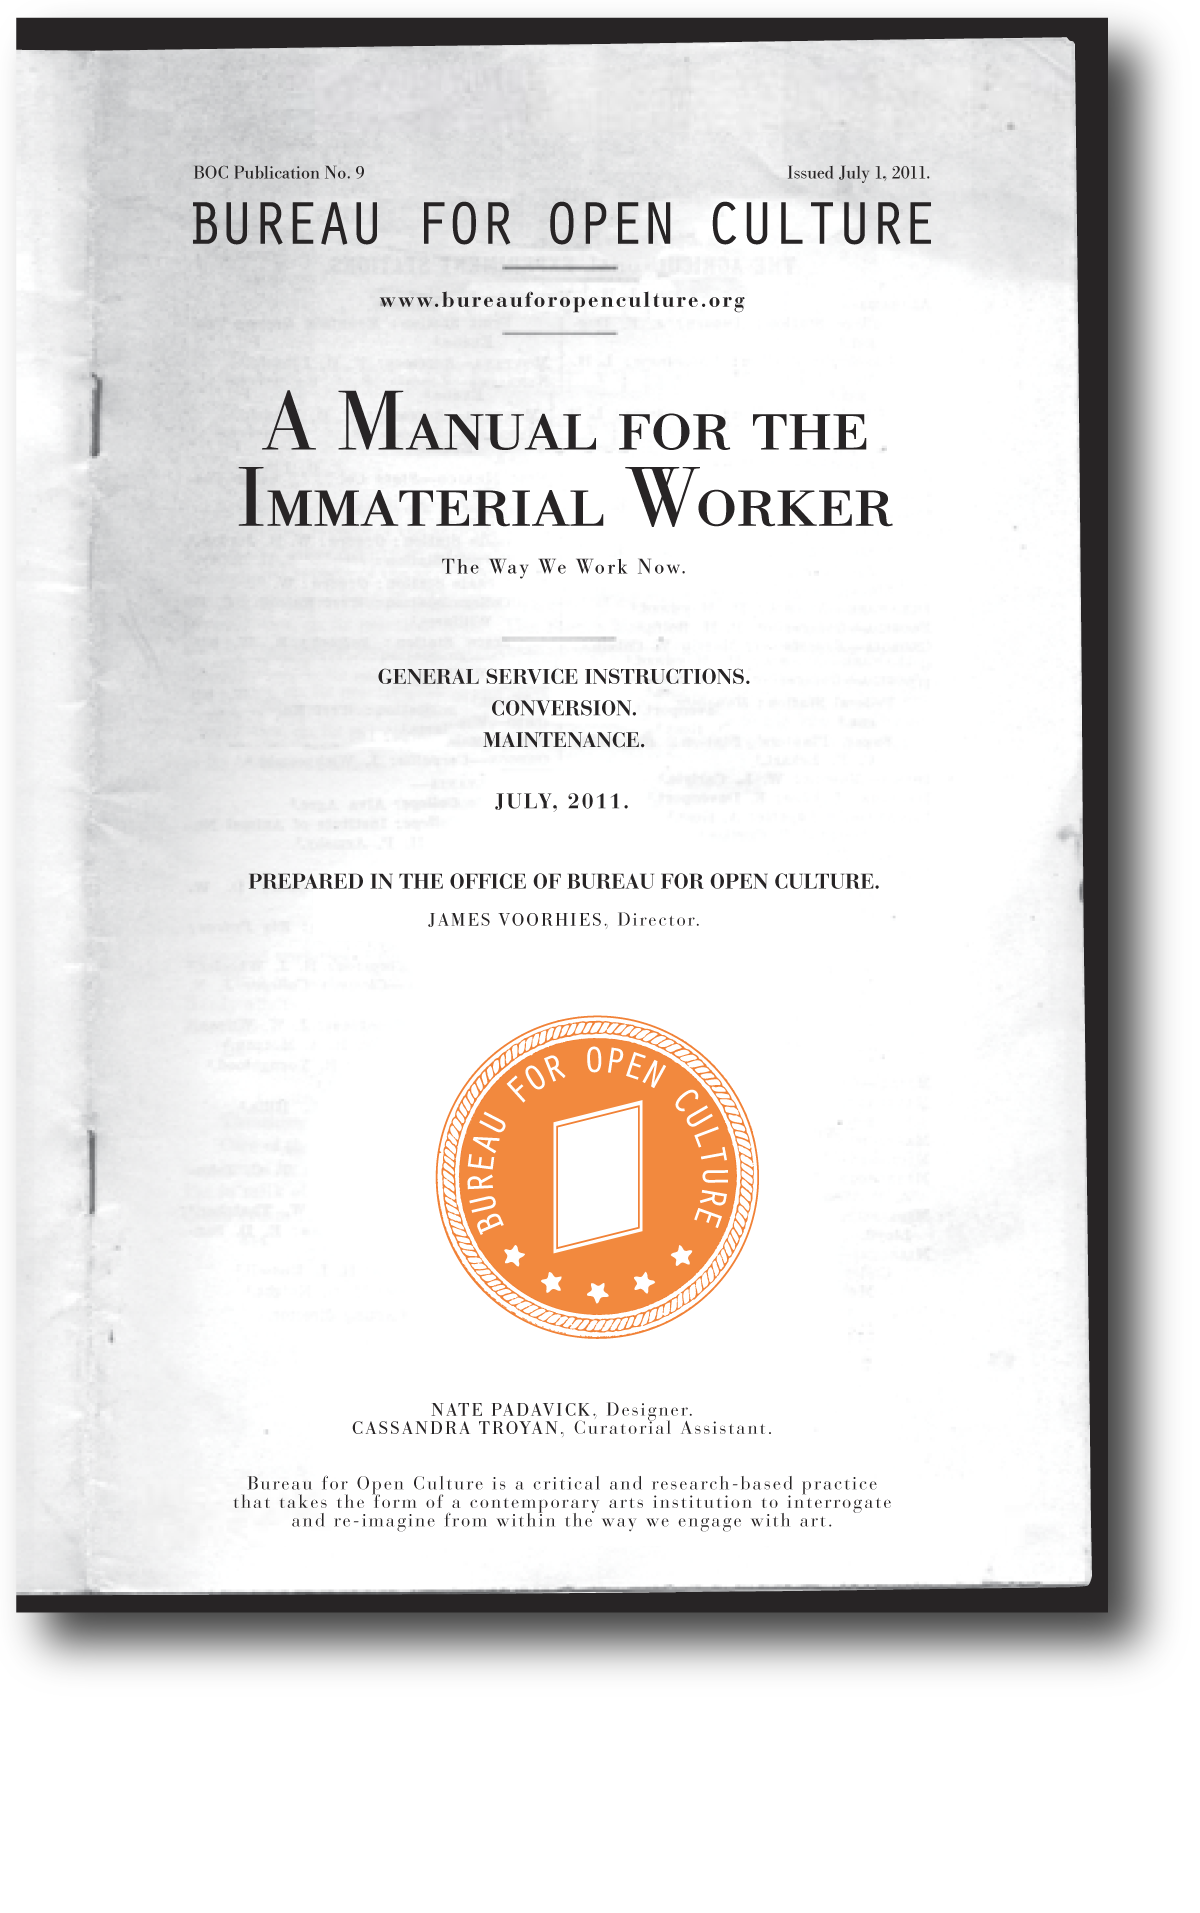 BOC-Publication-a-manual-for-the-immaterial-worker-cover.png